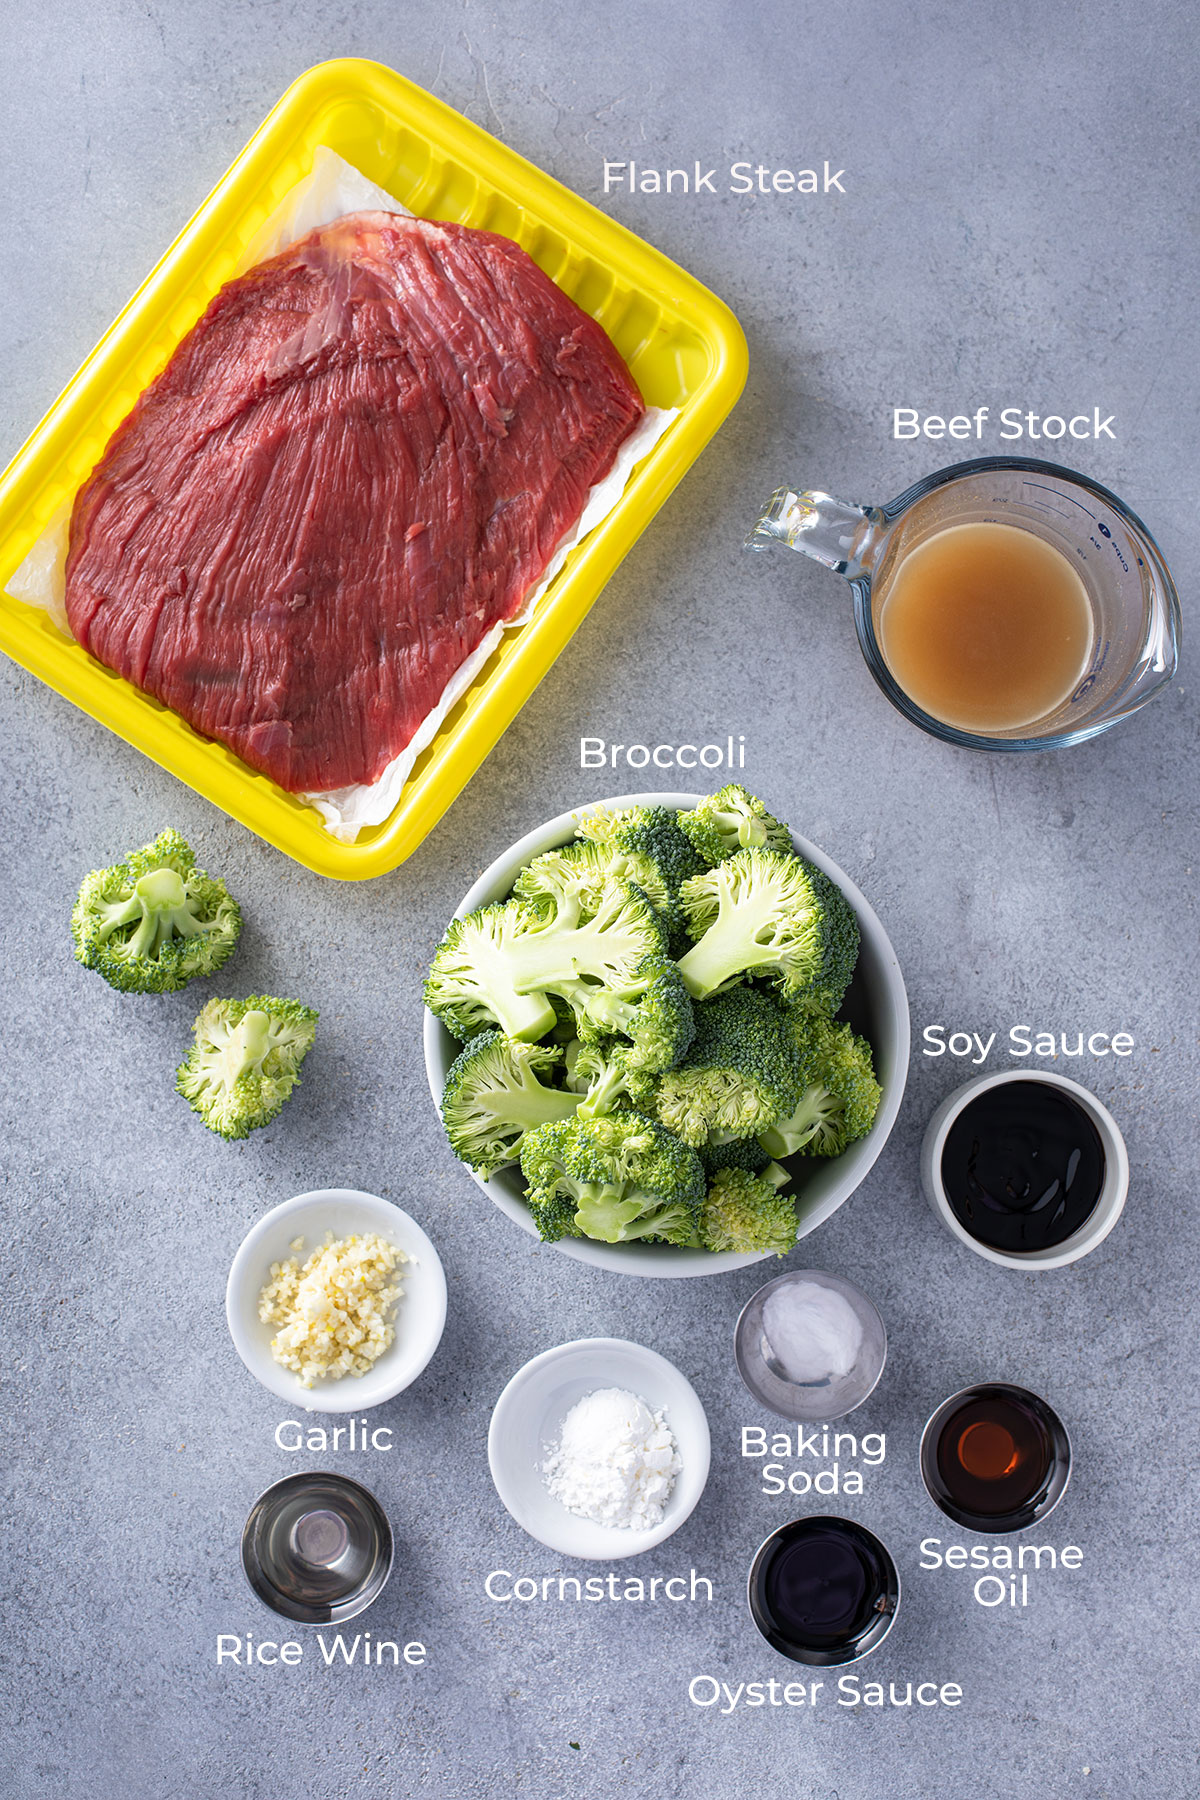 Sliced beef, broccoli and scallions on a wooden board,